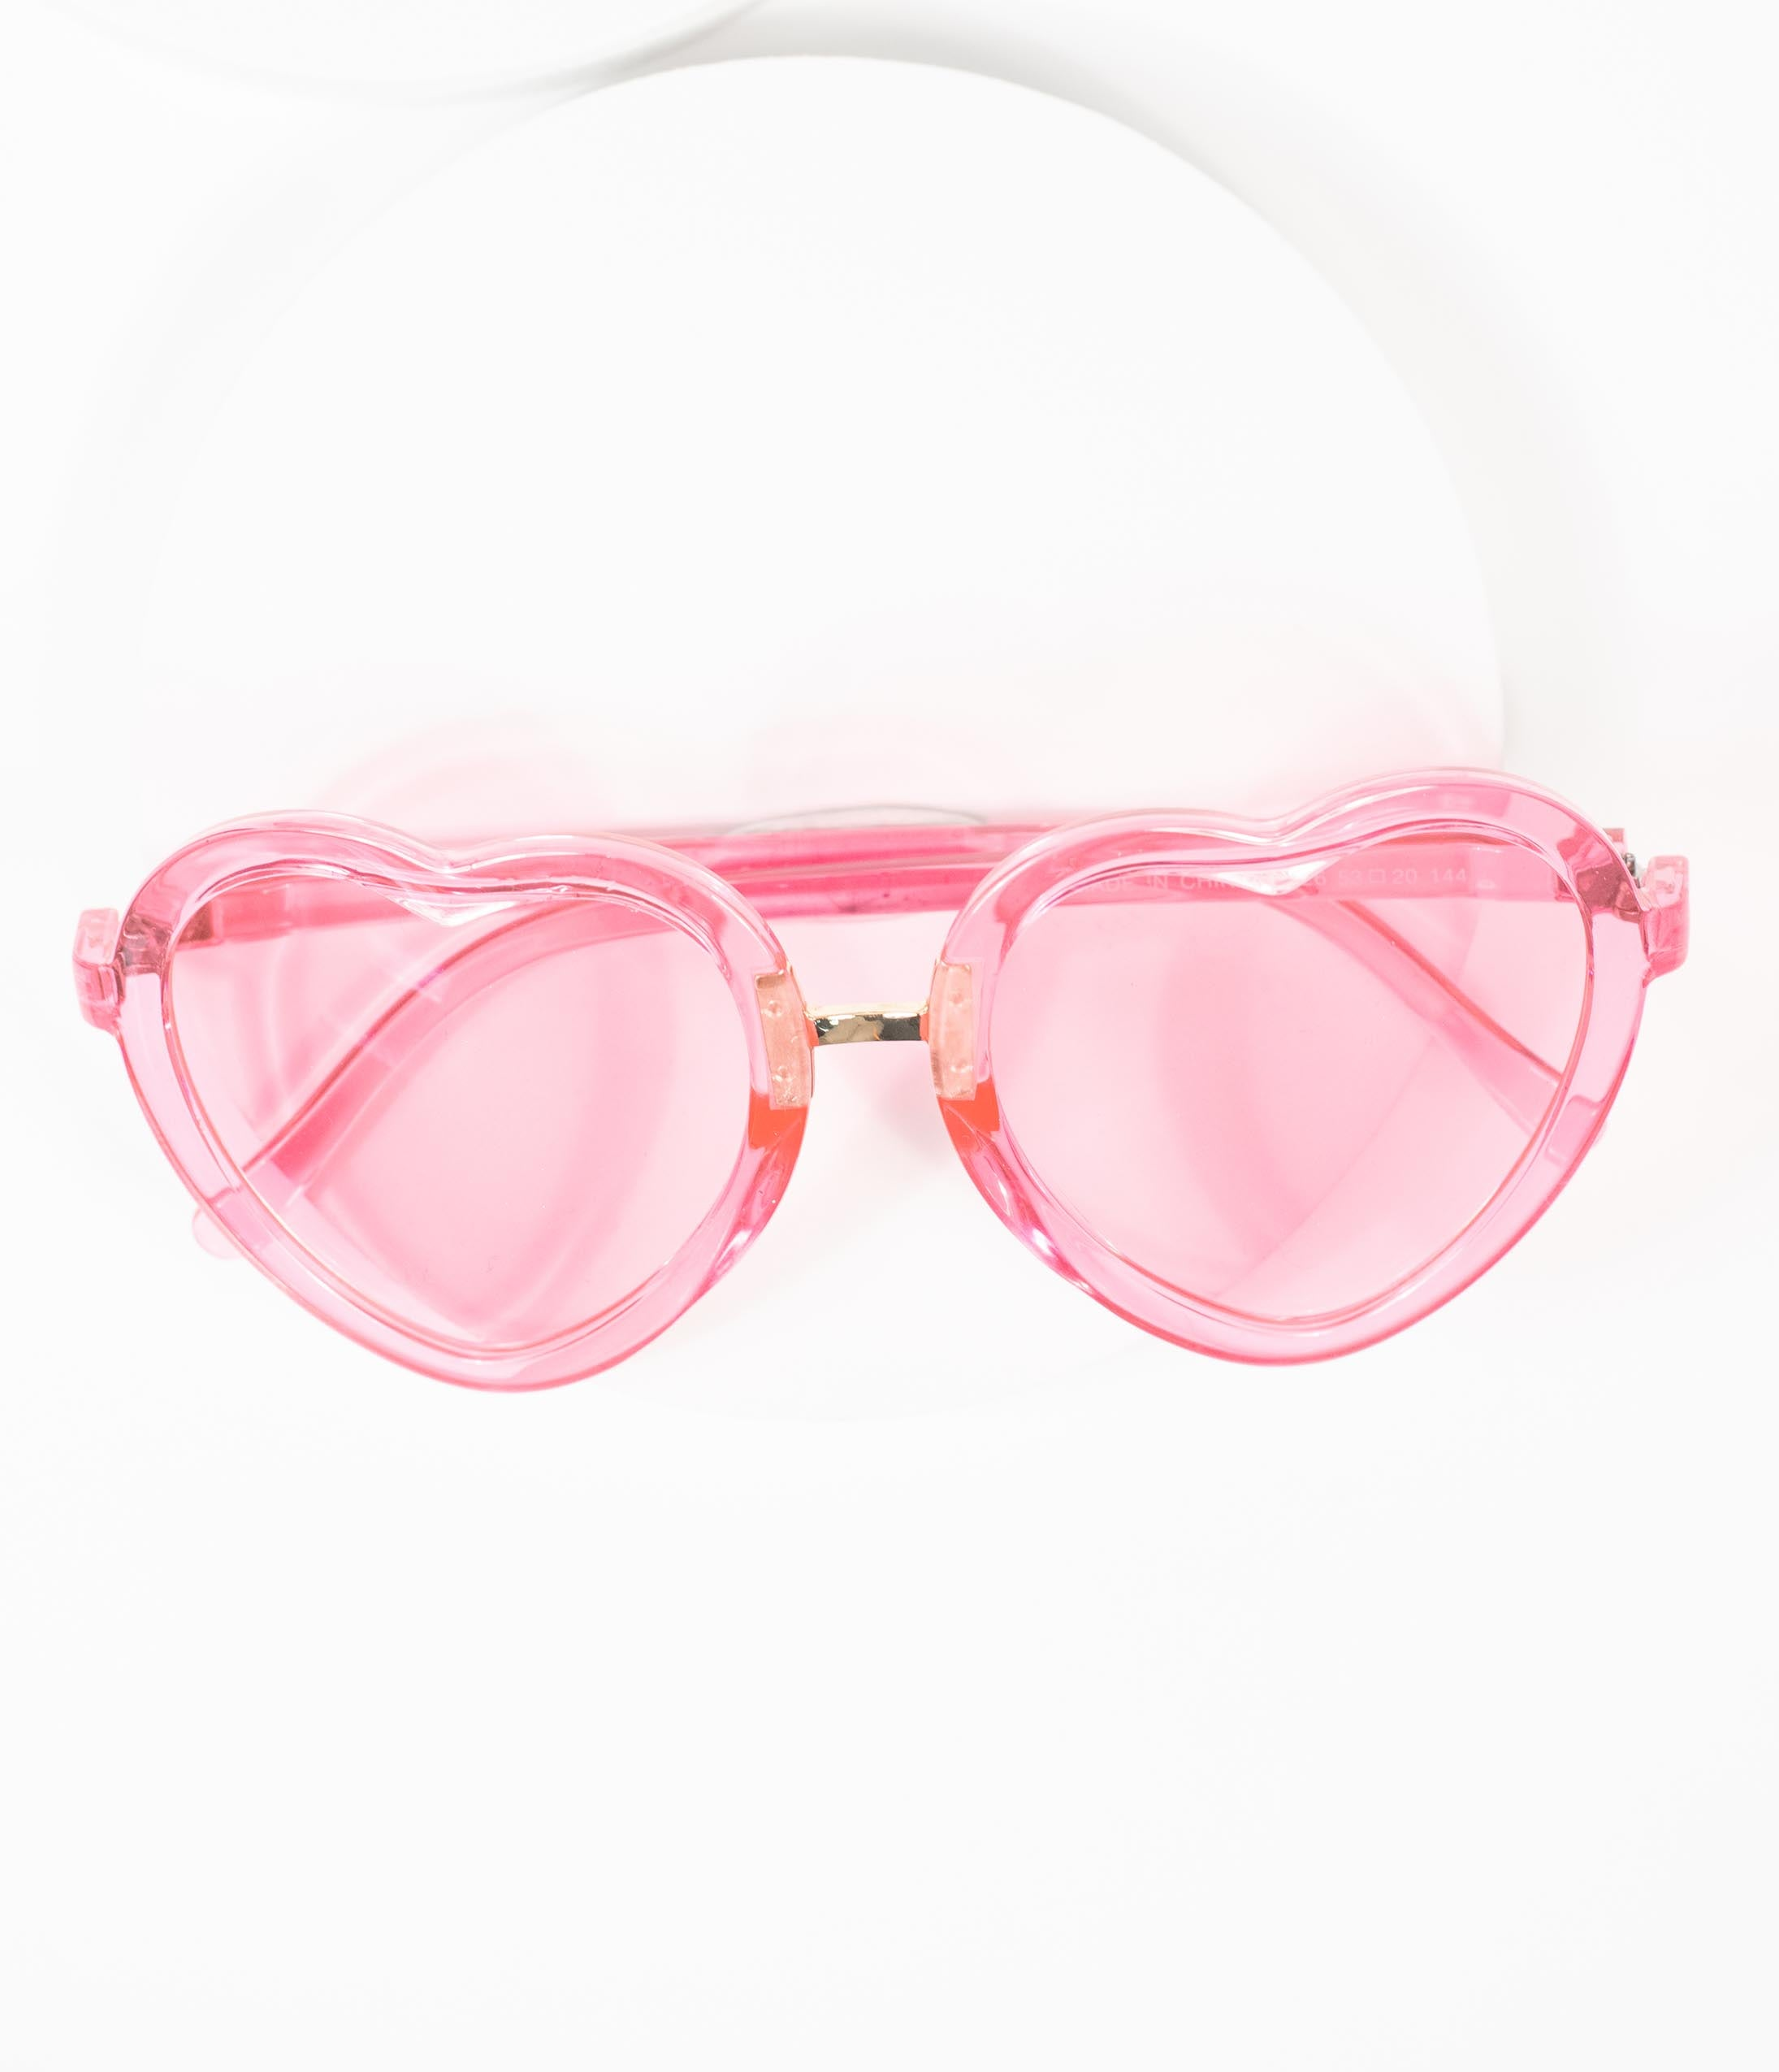 1950s Sunglasses & 50s Glasses | Retro Cat Eye Sunglasses Hot Pink Love Machine Heart Sunglasses $24.00 AT vintagedancer.com